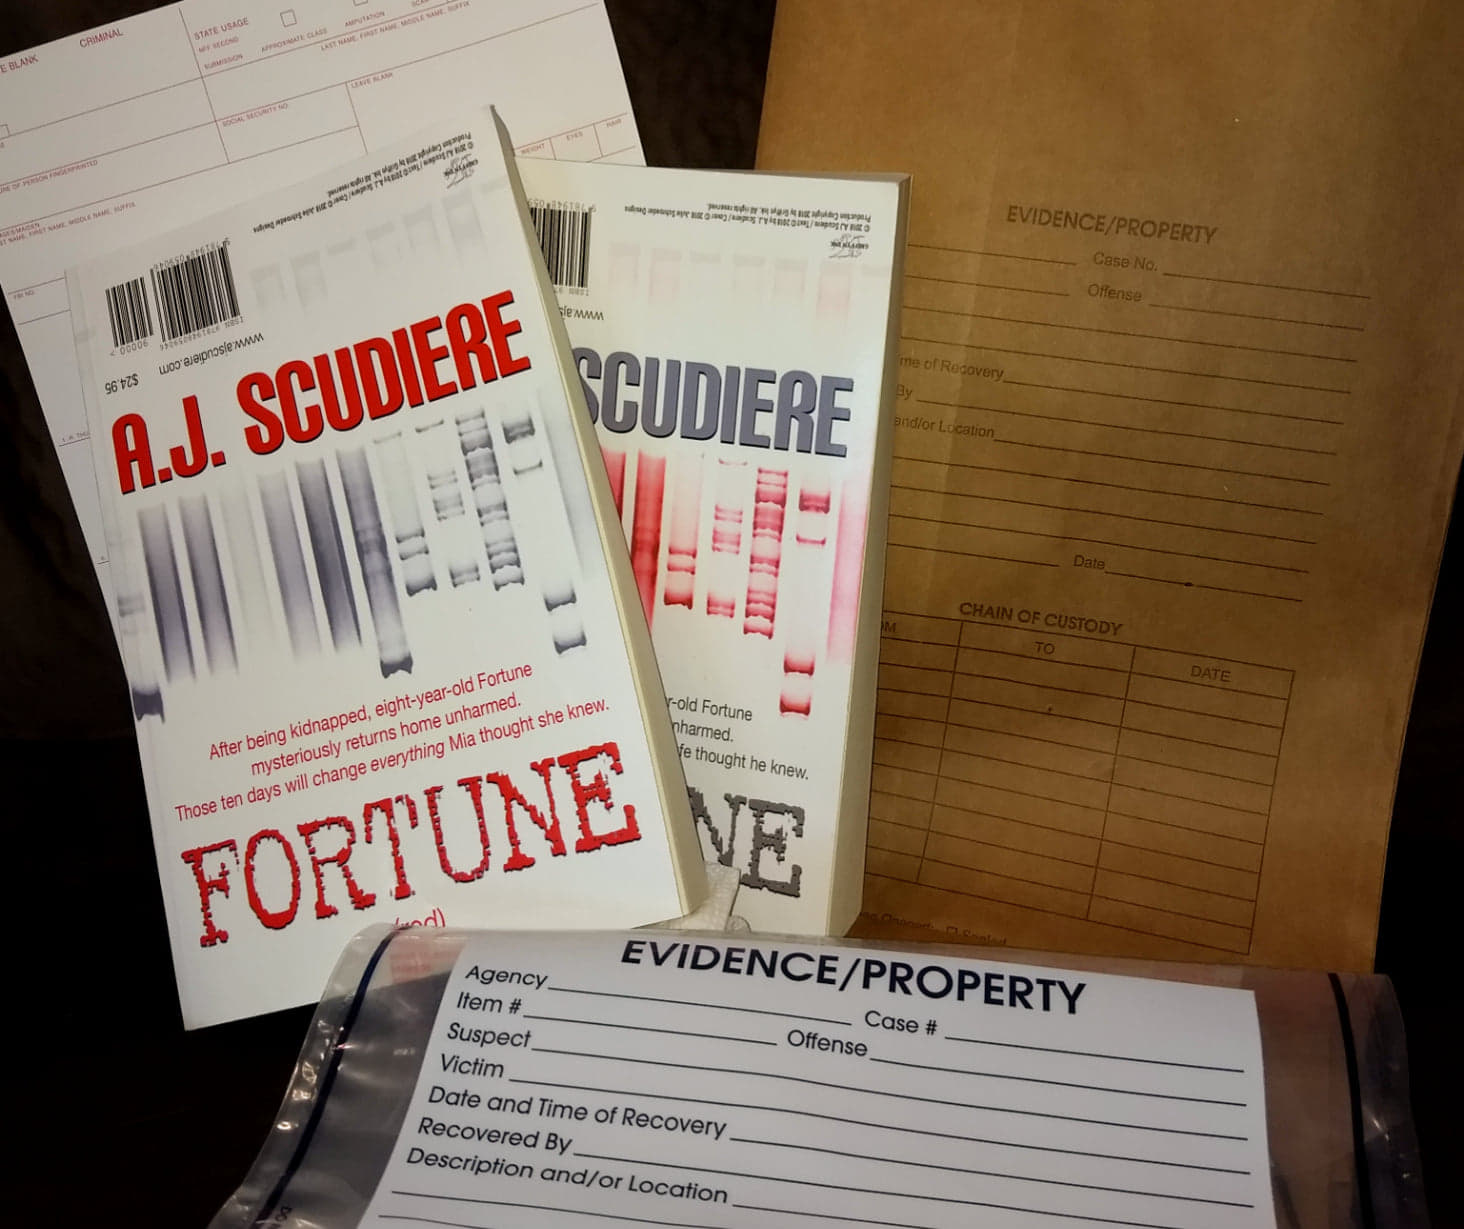 A.J. Scudiere - Fortune - Special Offer